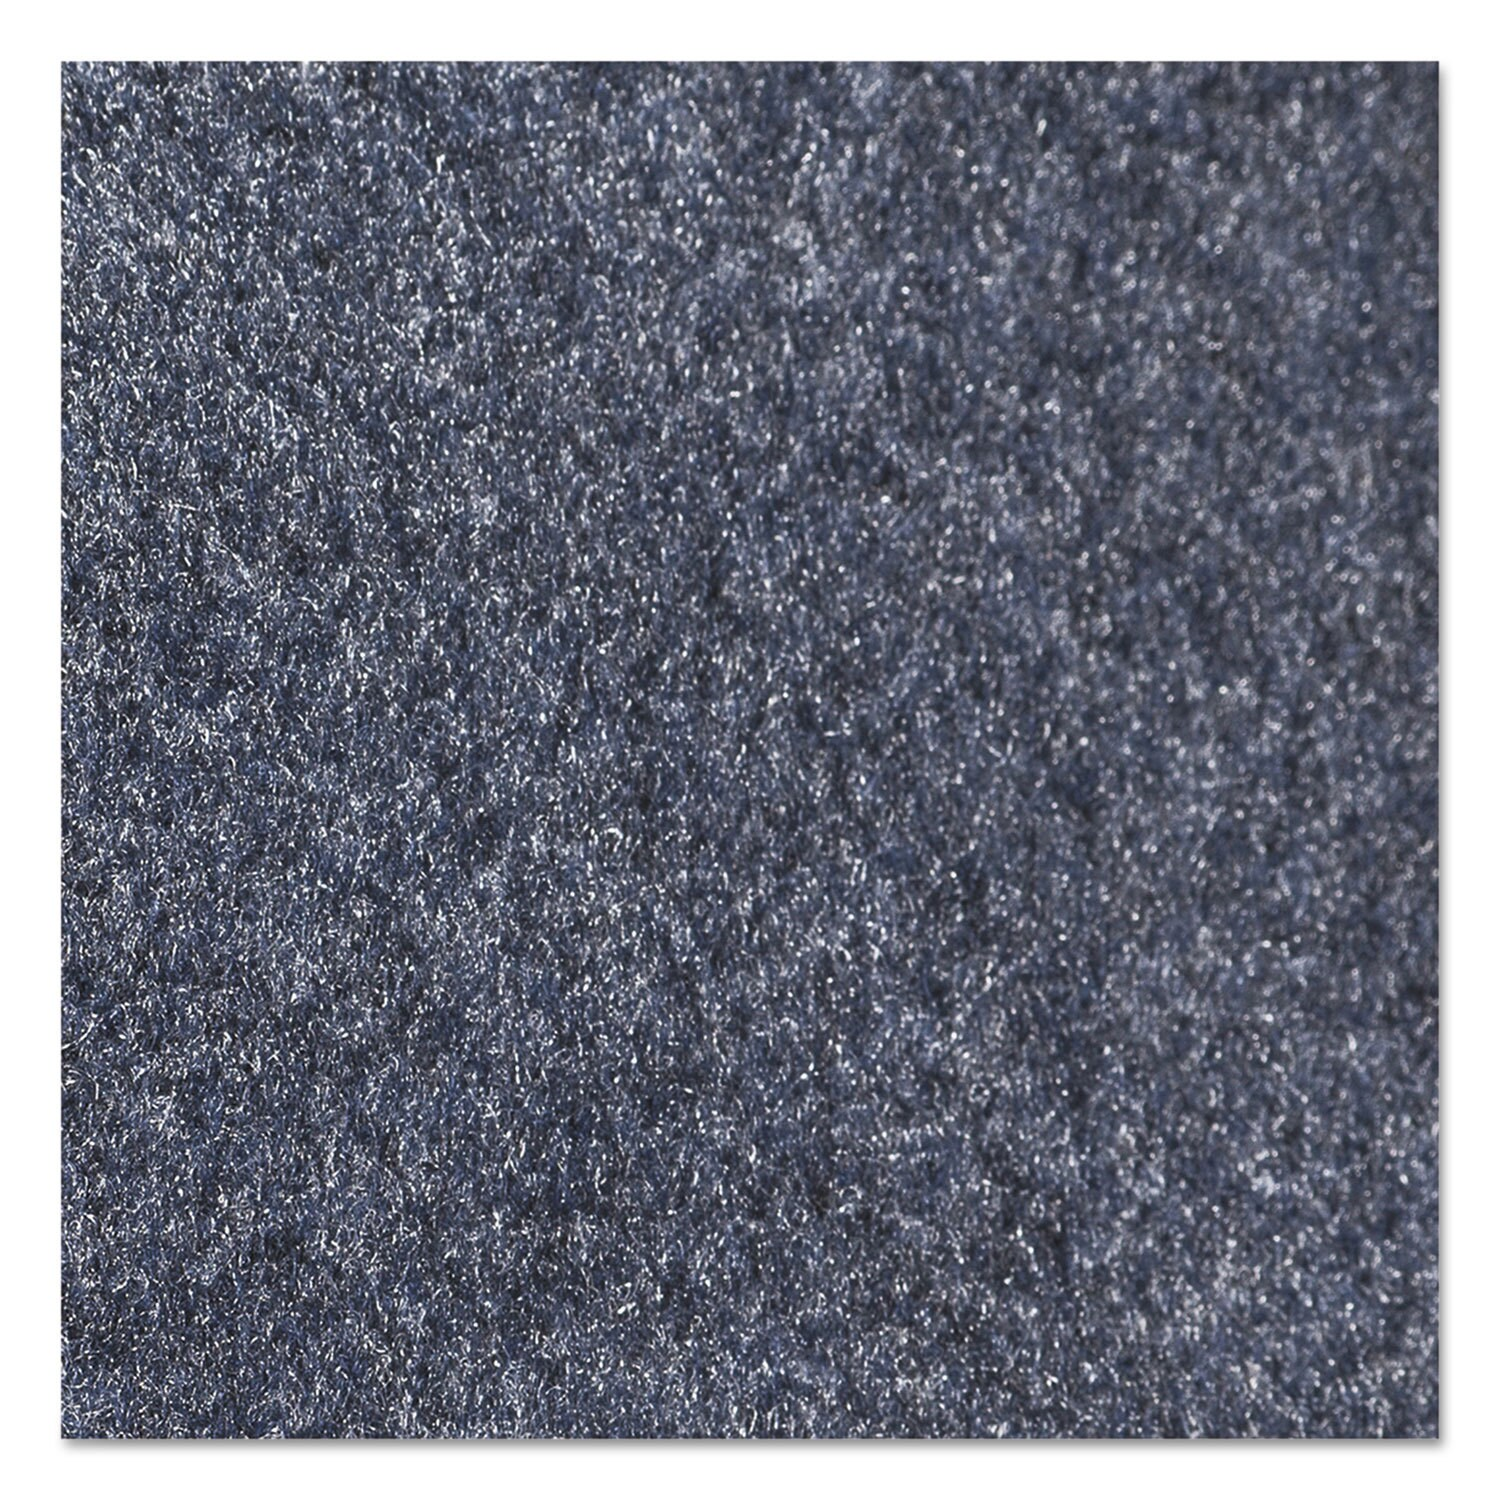 office chair mat 60 x 72 fuf bean bag buy floor mats online at overstock our best